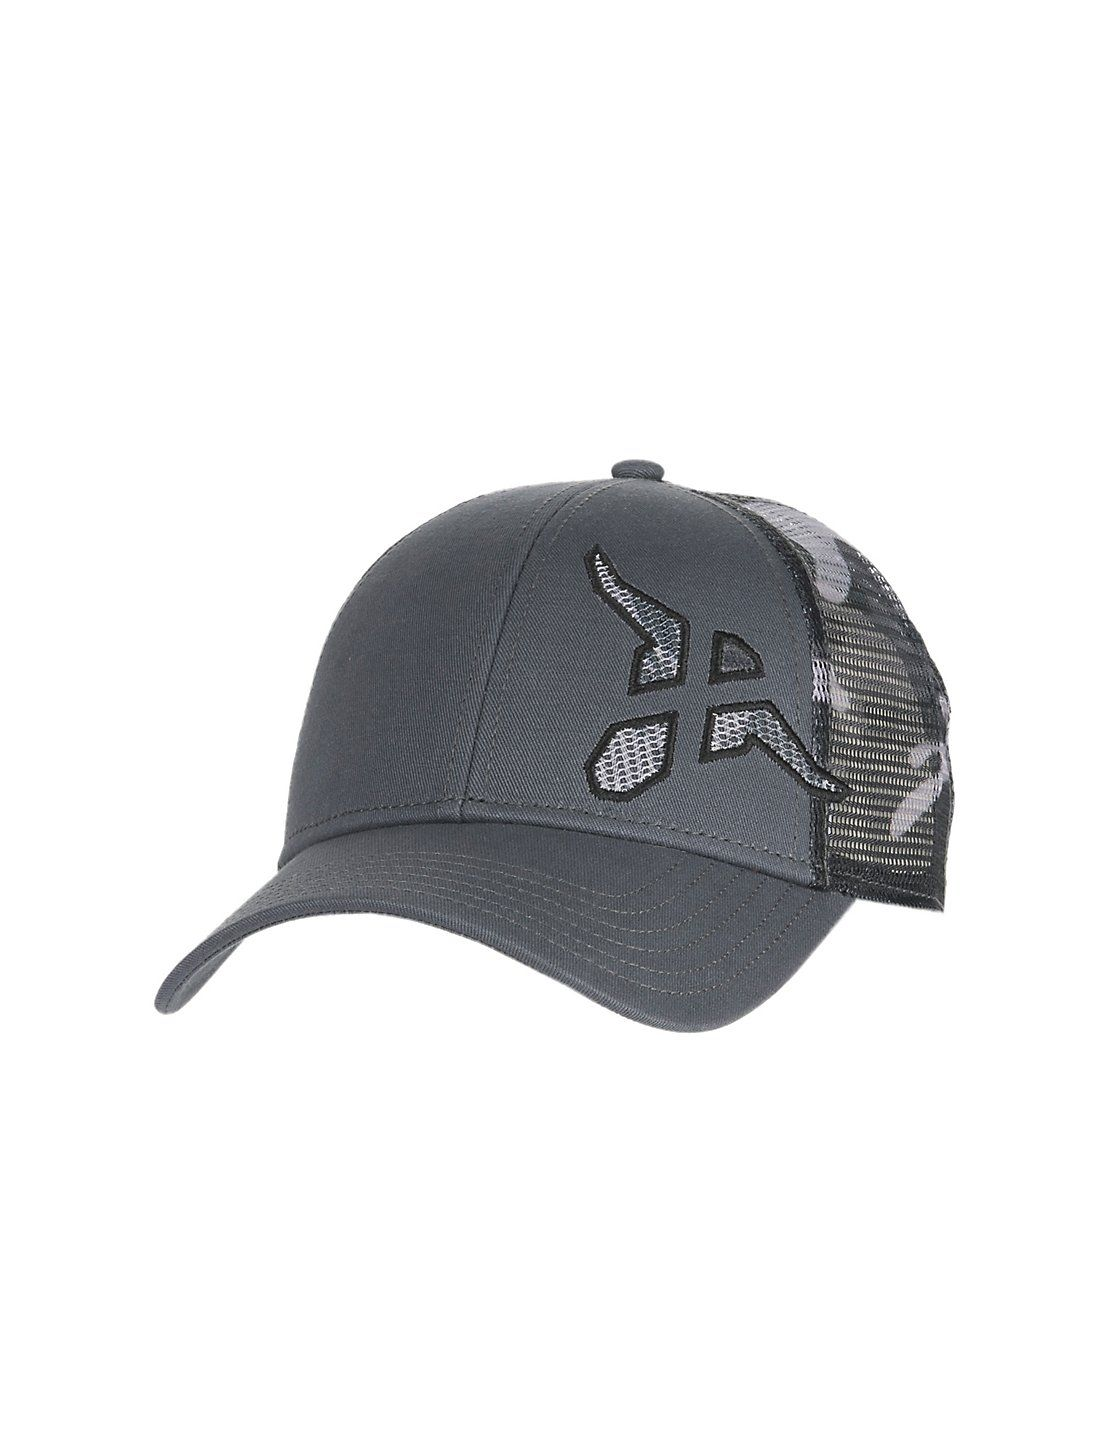 6abada0ad Wrangler 20X Blue and Green Bull Logo Snap Back Cap in 2019 | Cowboy ...